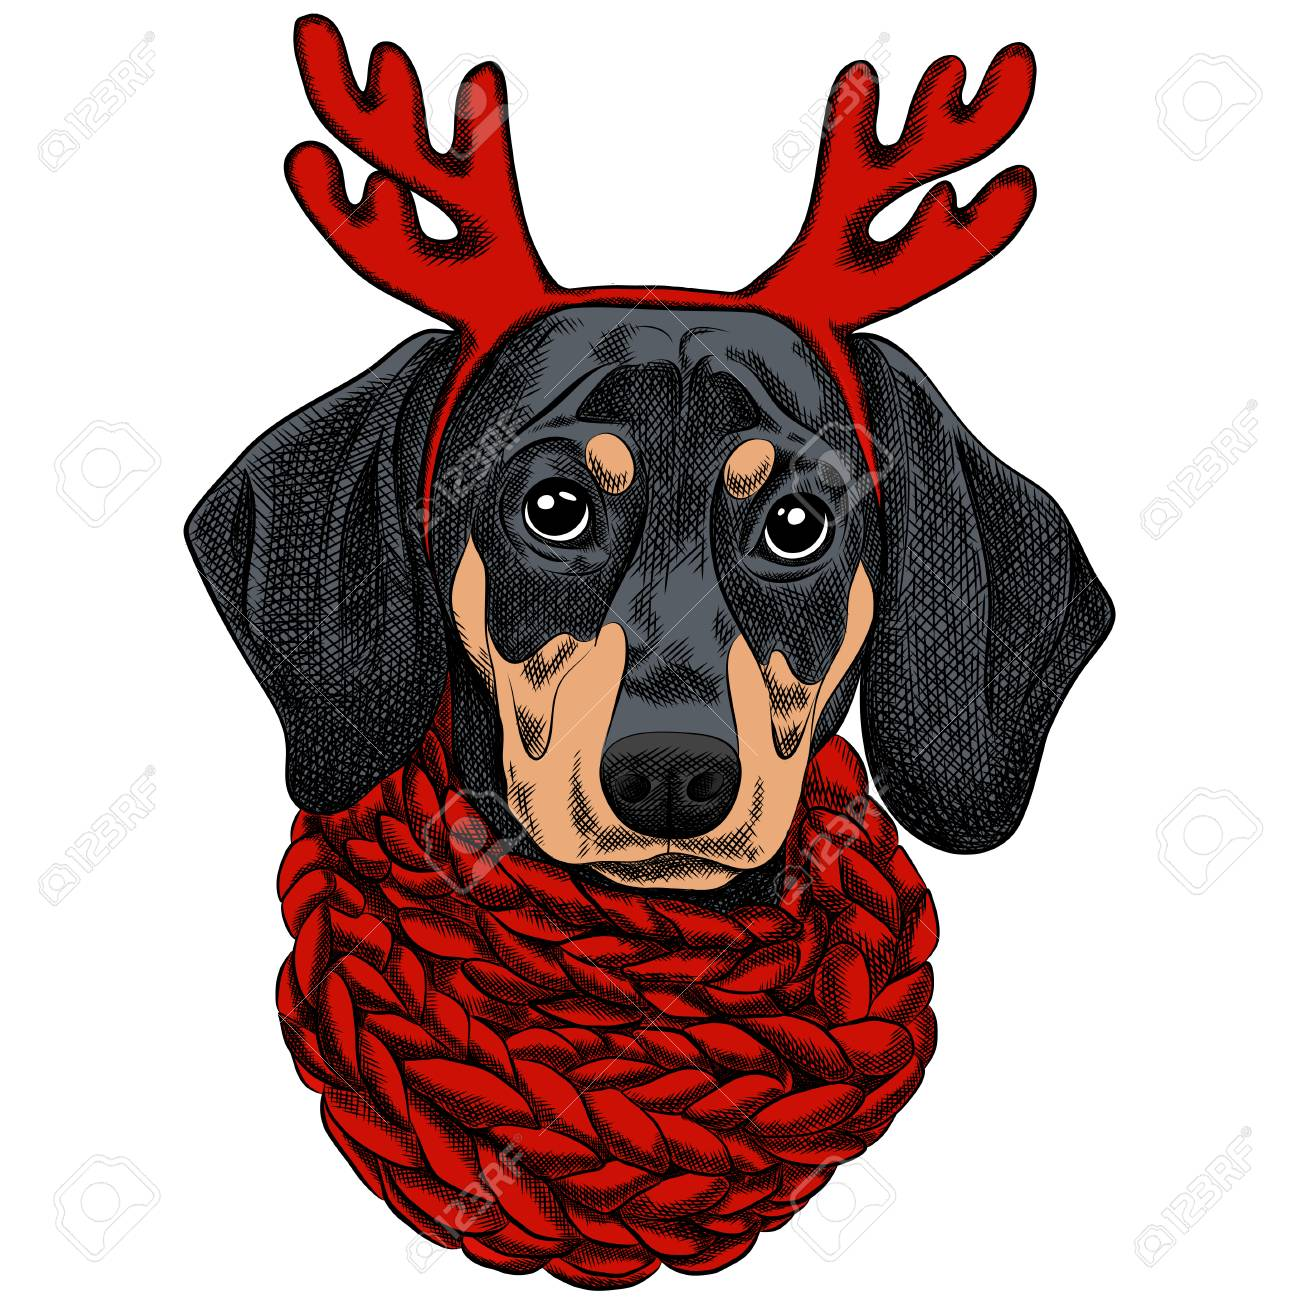 ad655e617c0 A Vector illustration of a Dachshund dog for a Christmas card. Dachshund  with a red knitted warm scarf and horns of a reindeer. Merry Christmas in  the year ...